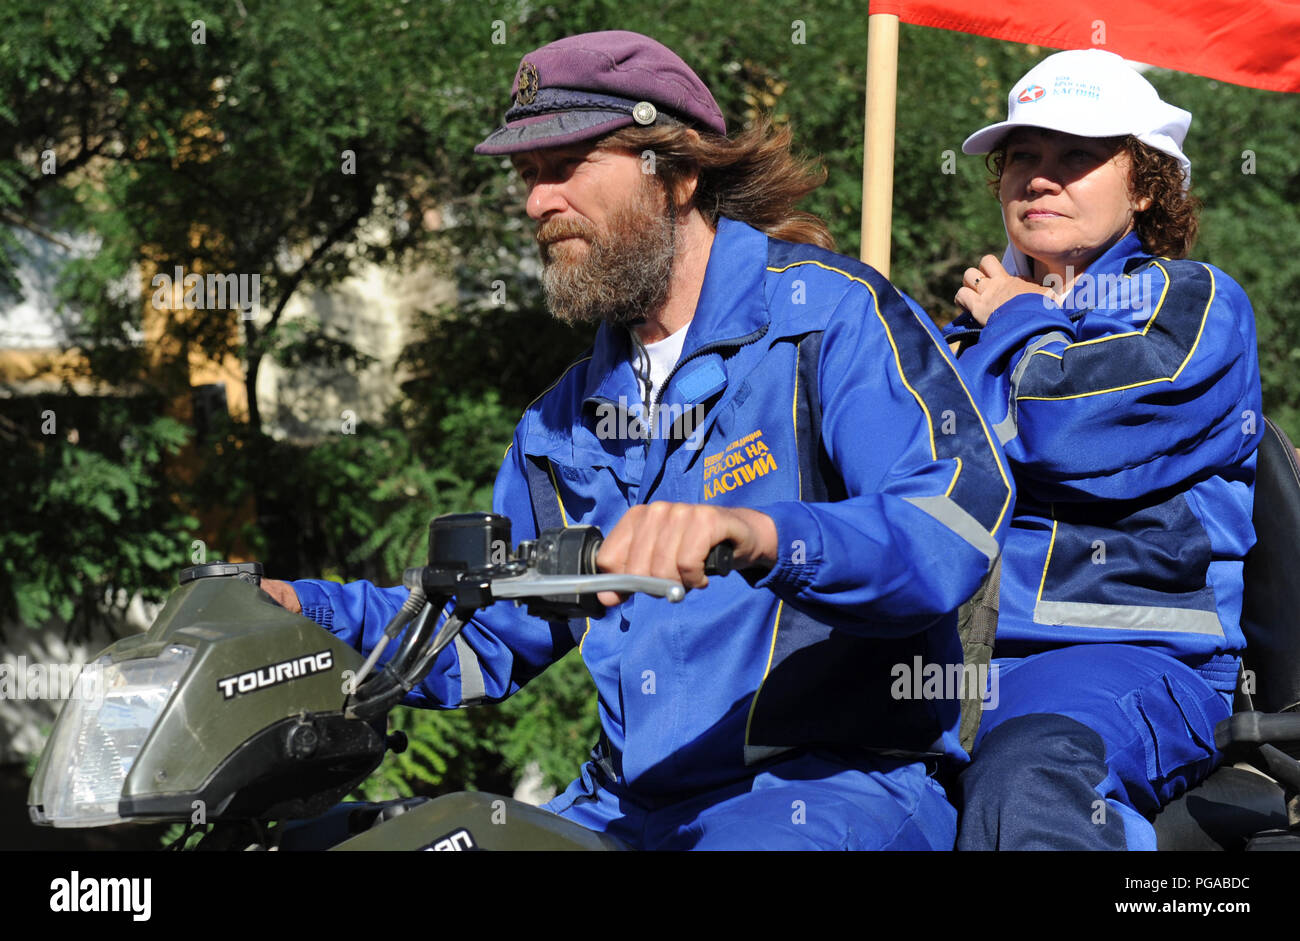 Fedor Konyukhov russian traveller, voyager, aerial and marine explorer during his visit in Astrakhan, Russia. - Stock Image